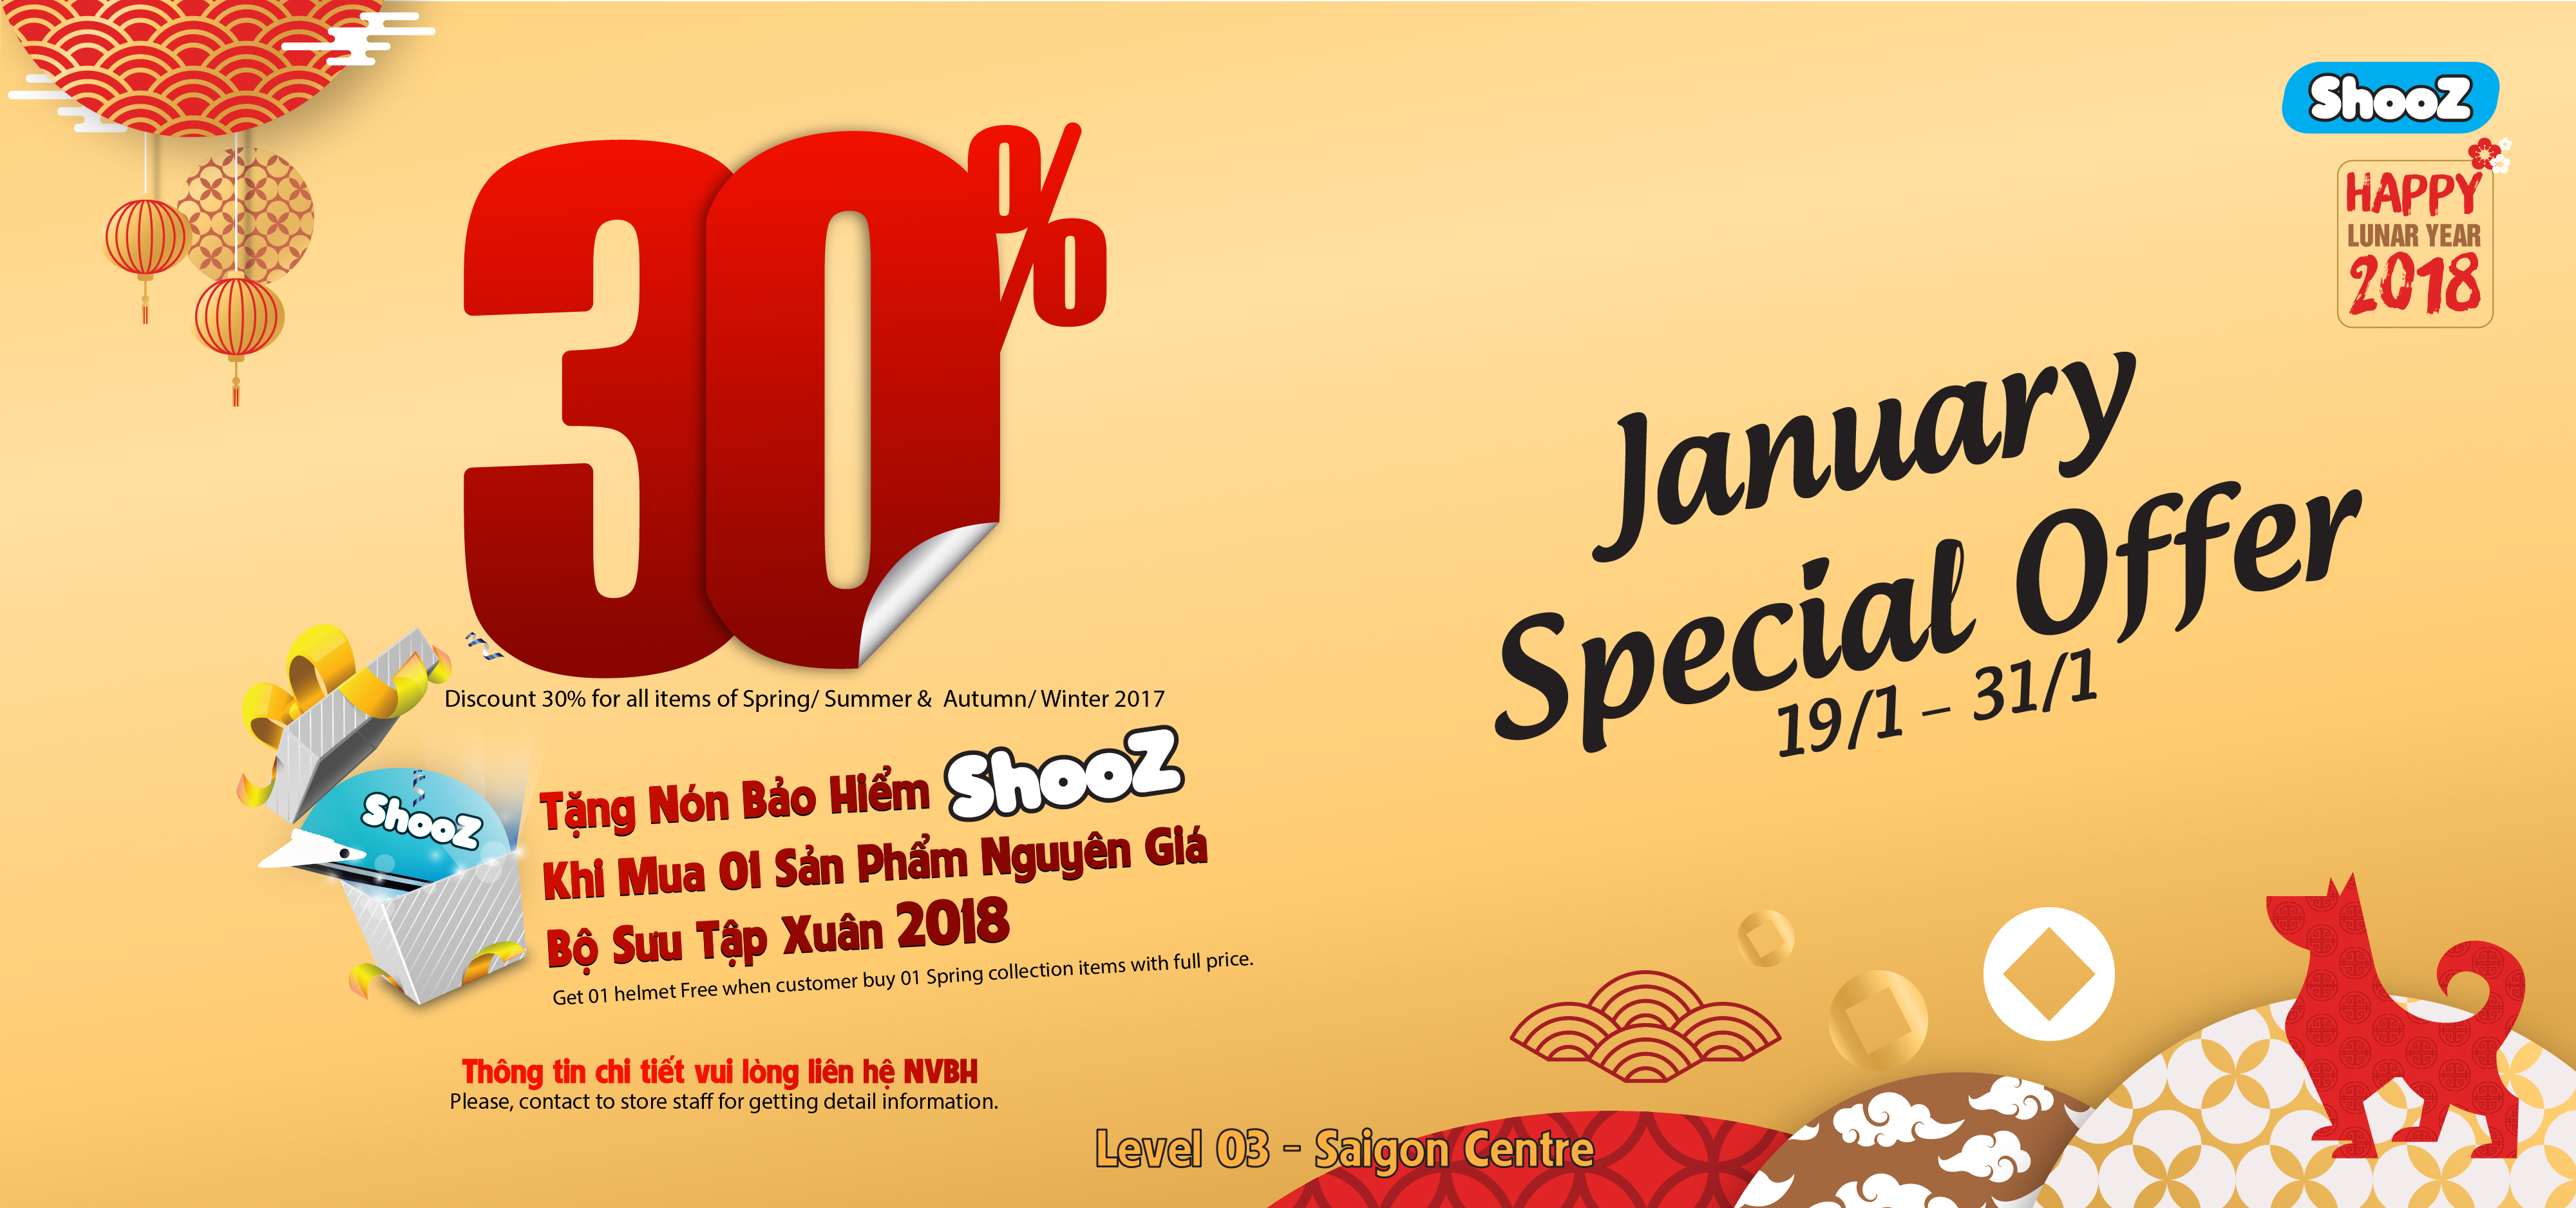 JANUARY SPECIAL OFFER